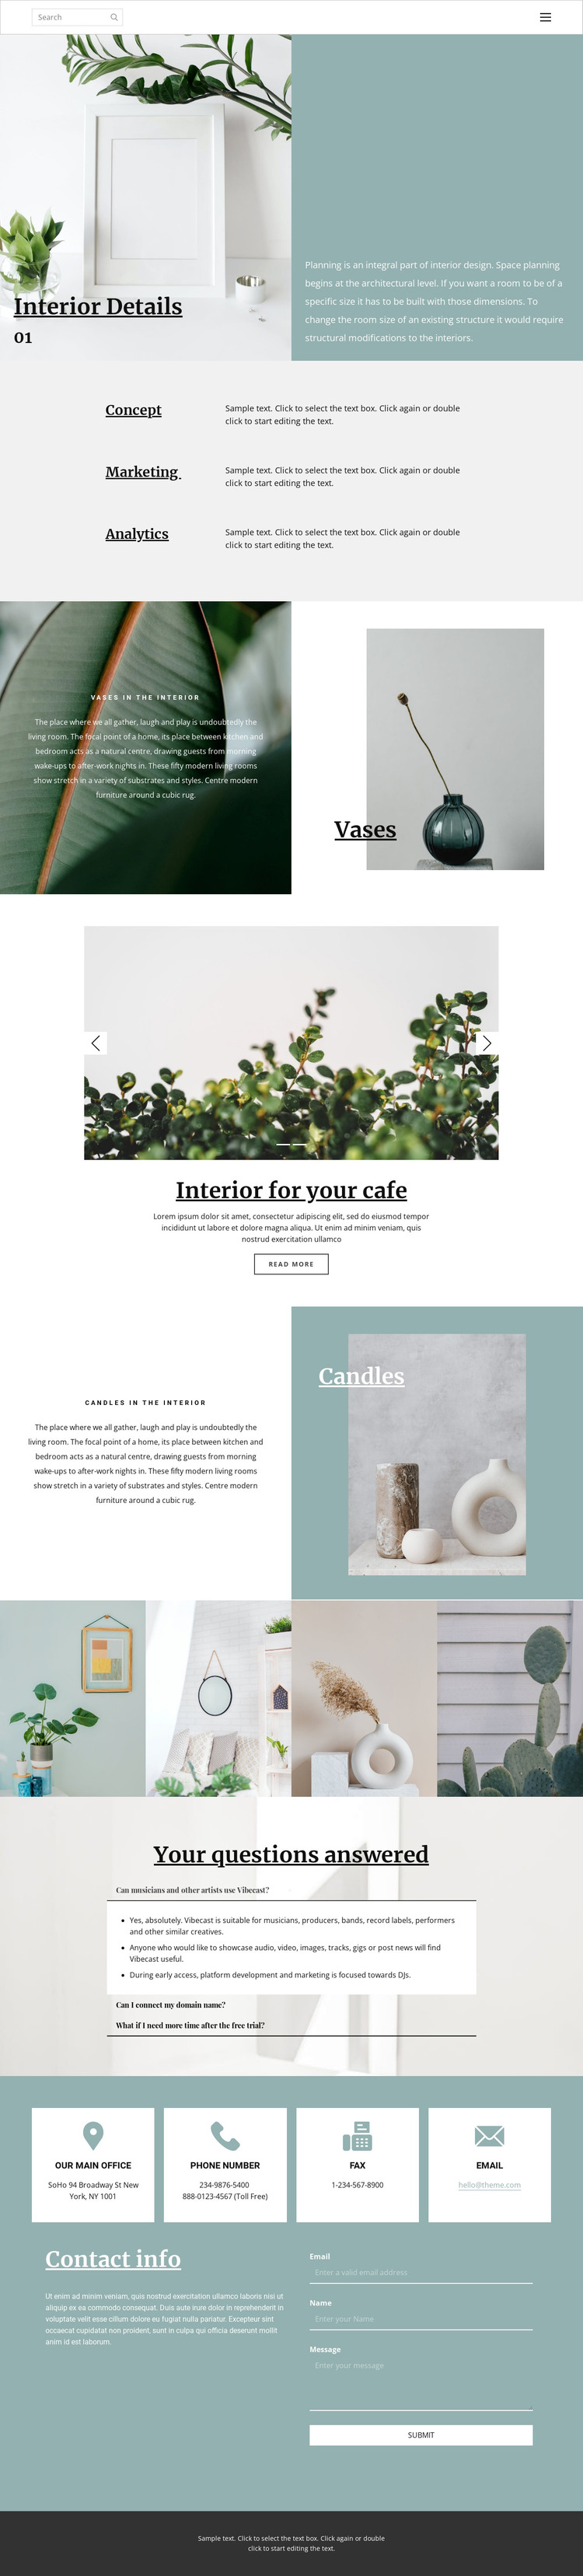 Help in organizing the space at home Web Design